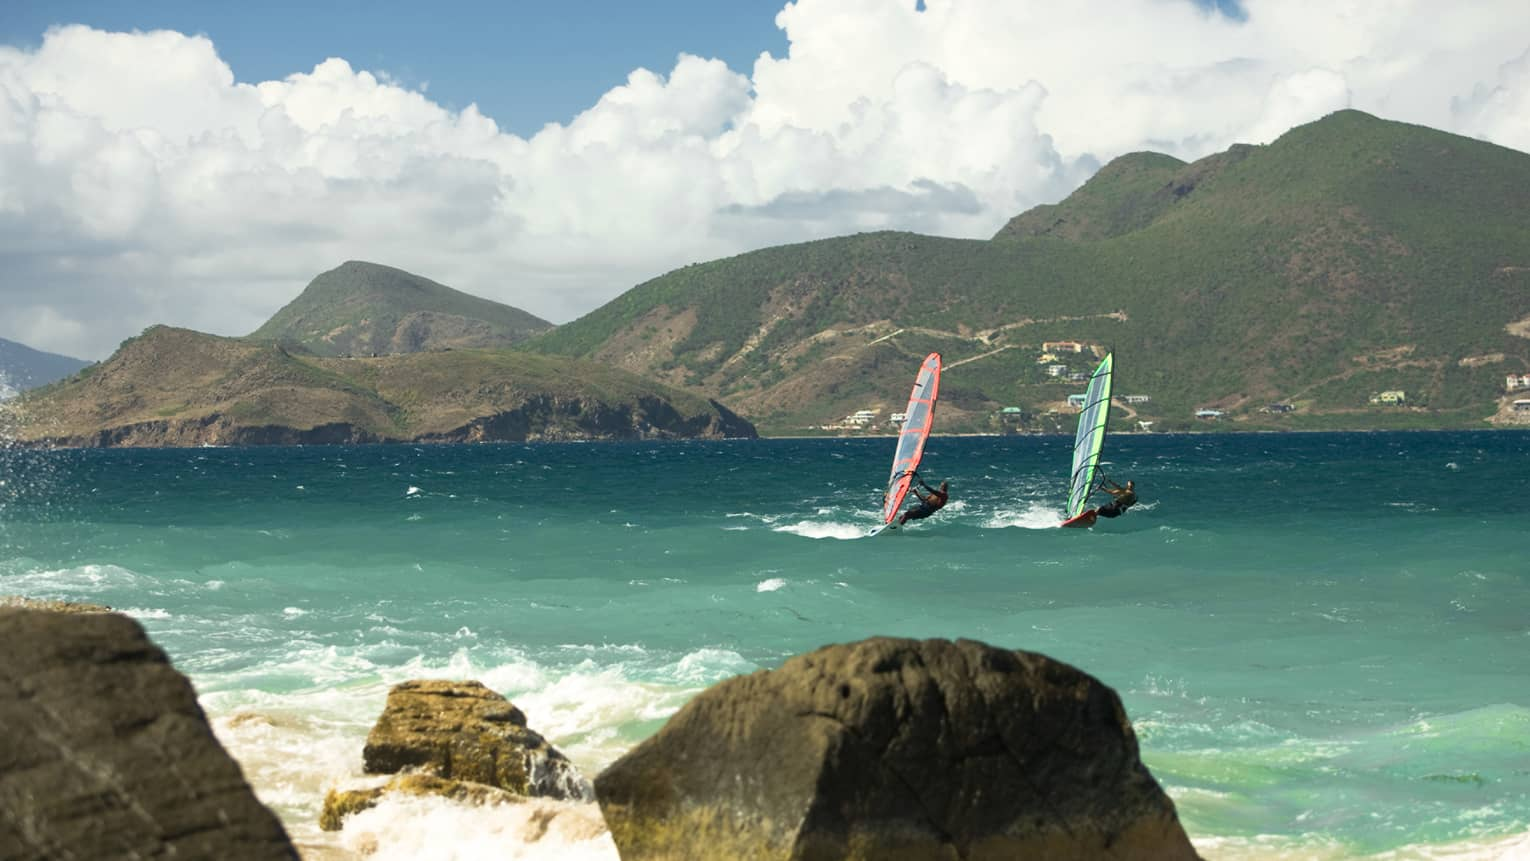 Two windsurfers glide on waves in bay between rocks, green mountains